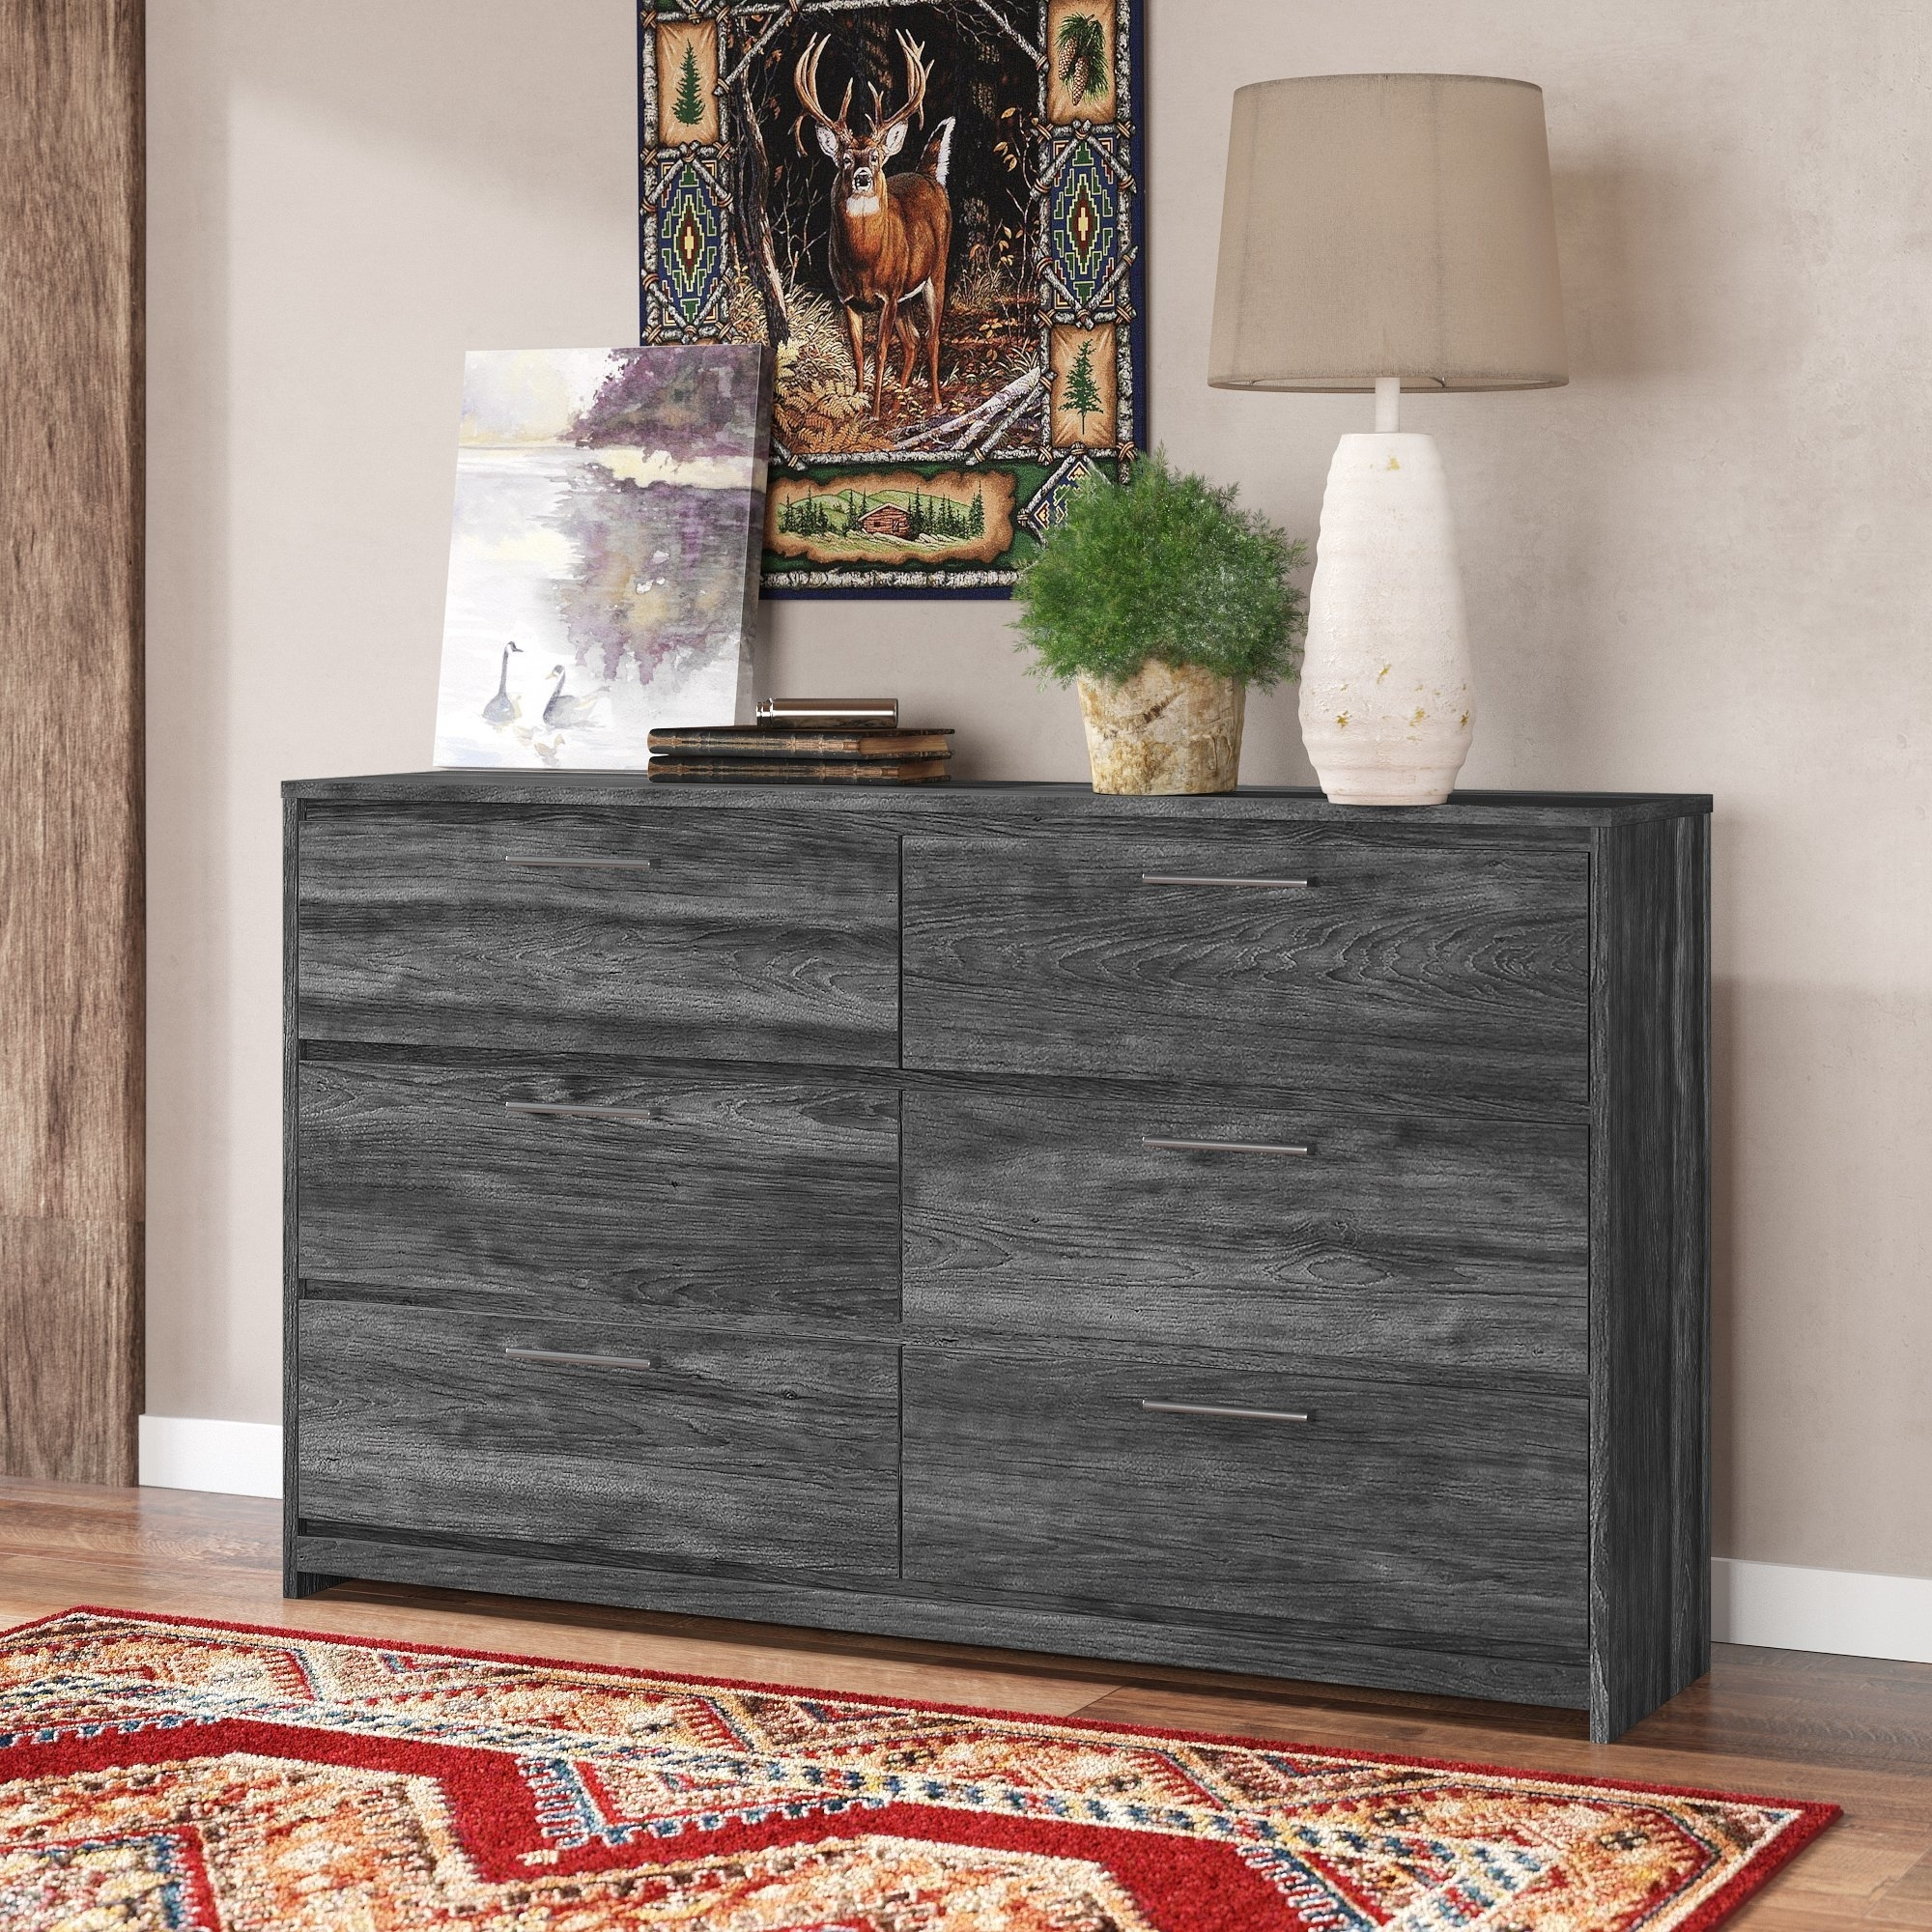 Foundry Select | Wayfair With Regard To Most Current Teagan Sideboards (View 16 of 20)